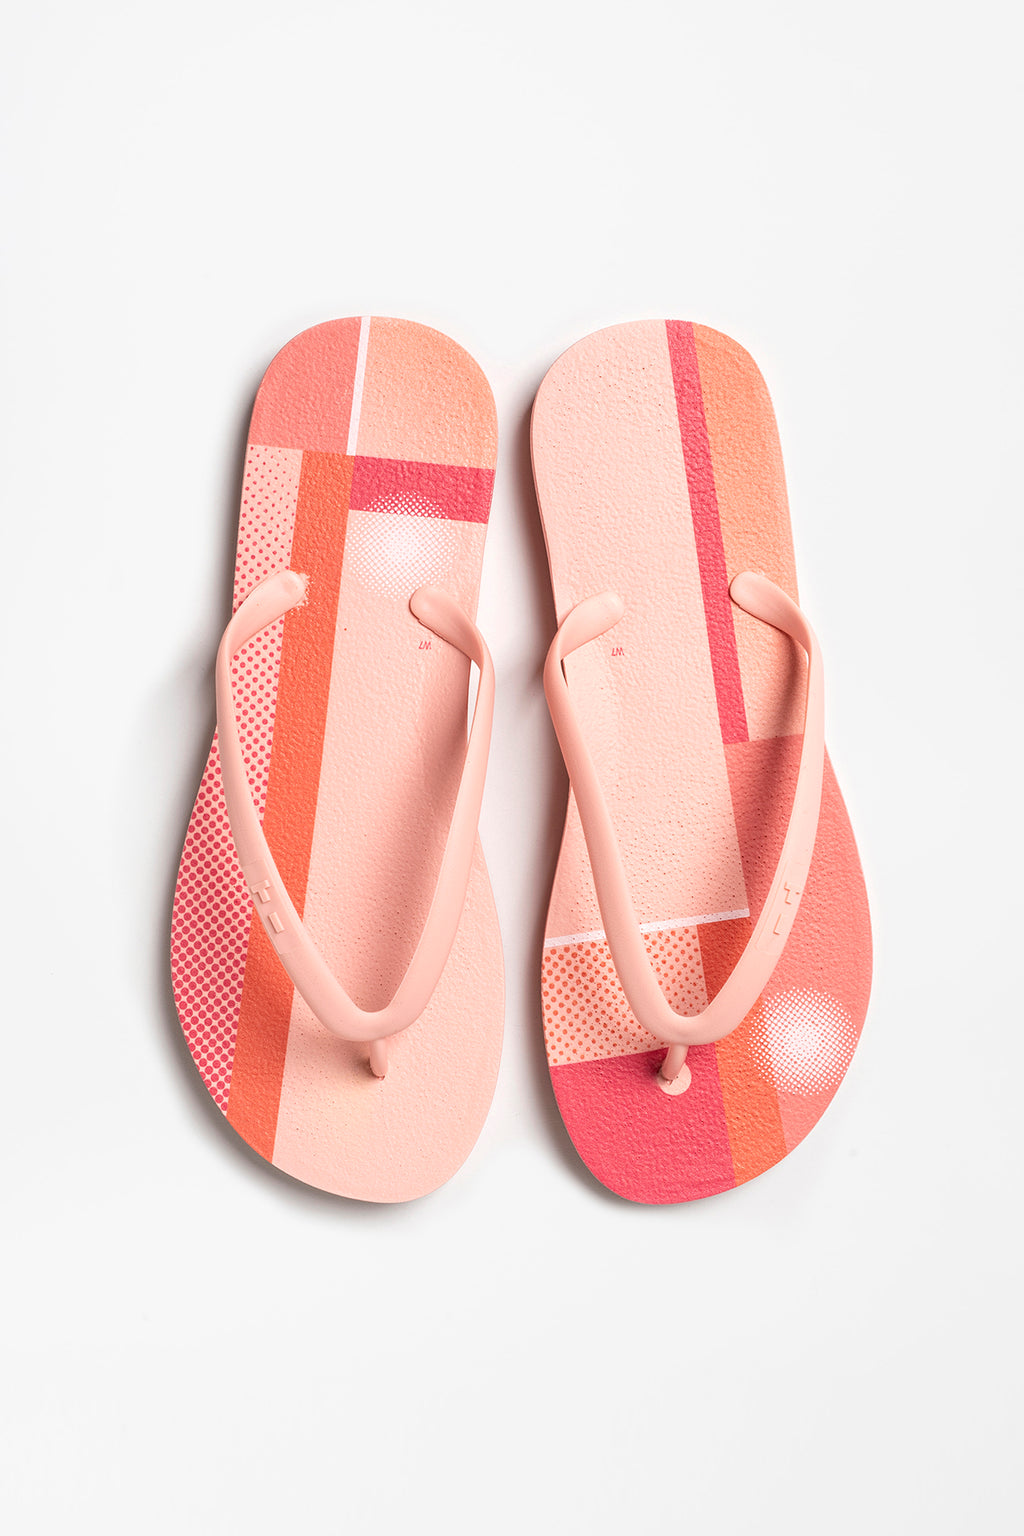 Women's pink flip flops with color block print pattern